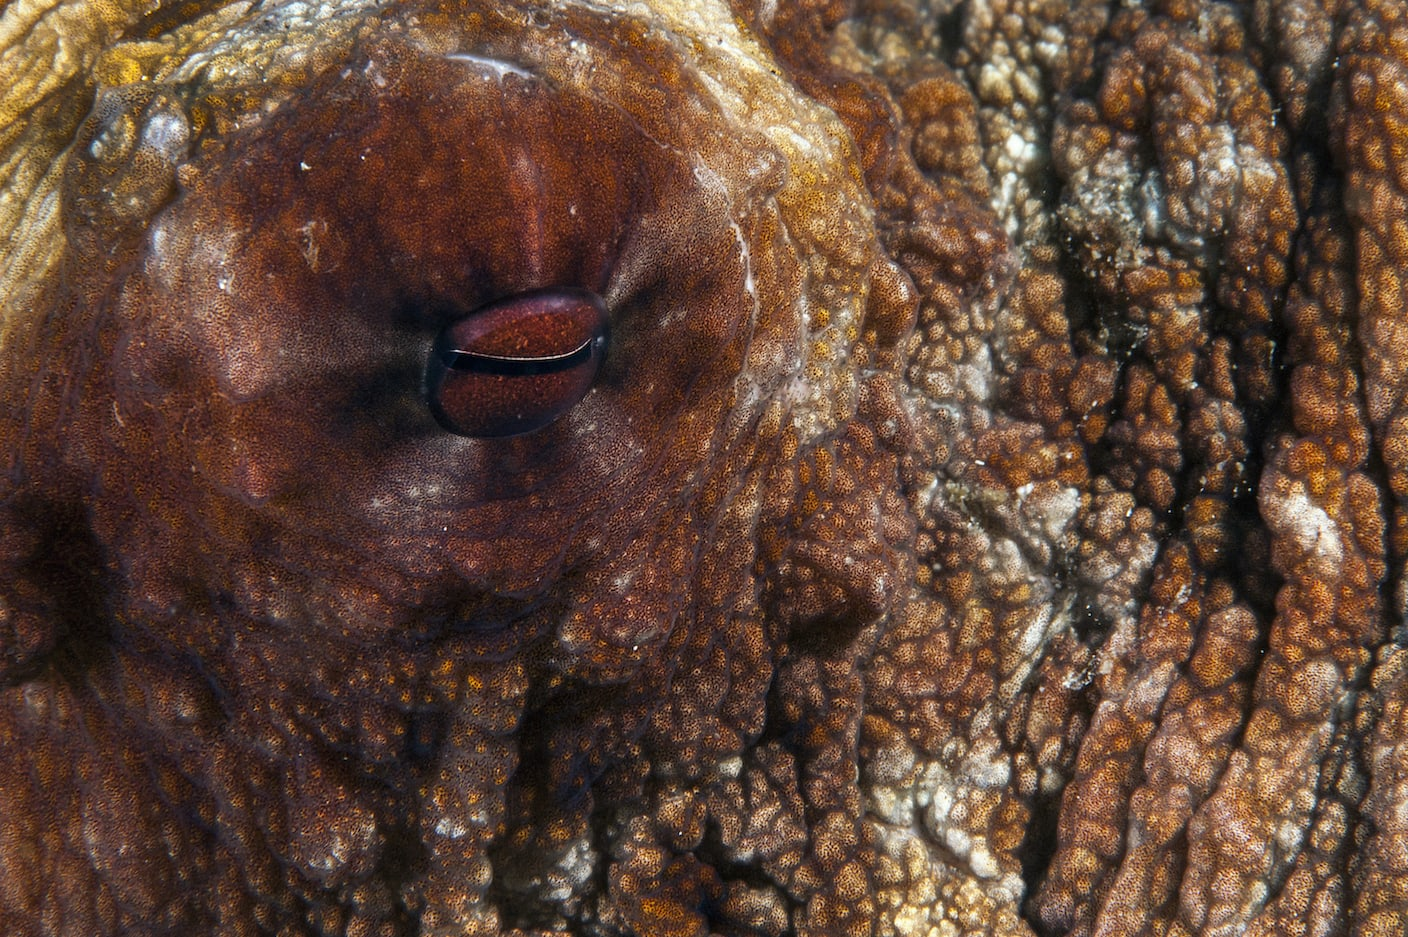 """Breeding mode in female octopuses is activated by an optic gland. Positioned close to her eyes, the optic gland functions like the pituitary gland in humans. It helps the female octopus prepare to lay her eggs after a successful session of mating. This could take a few weeks. Once the eggs have laid, there is a period of brooding still to complete before they hatch. Through this time, hormones secreted by the optic gland help the female focus entirely on caring for her clutch of eggs. This means she even quits eating. Starvation and exhaustion while continuing to keep the eggs clean, oxygenated, and safe from predators drastically weakens her strength. By the time the eggs hatch, the optic gland has sent the female octopus further into what scientists call a """"self-destruct"""" mode until she finally dies. Photo: Umeed Mistry"""